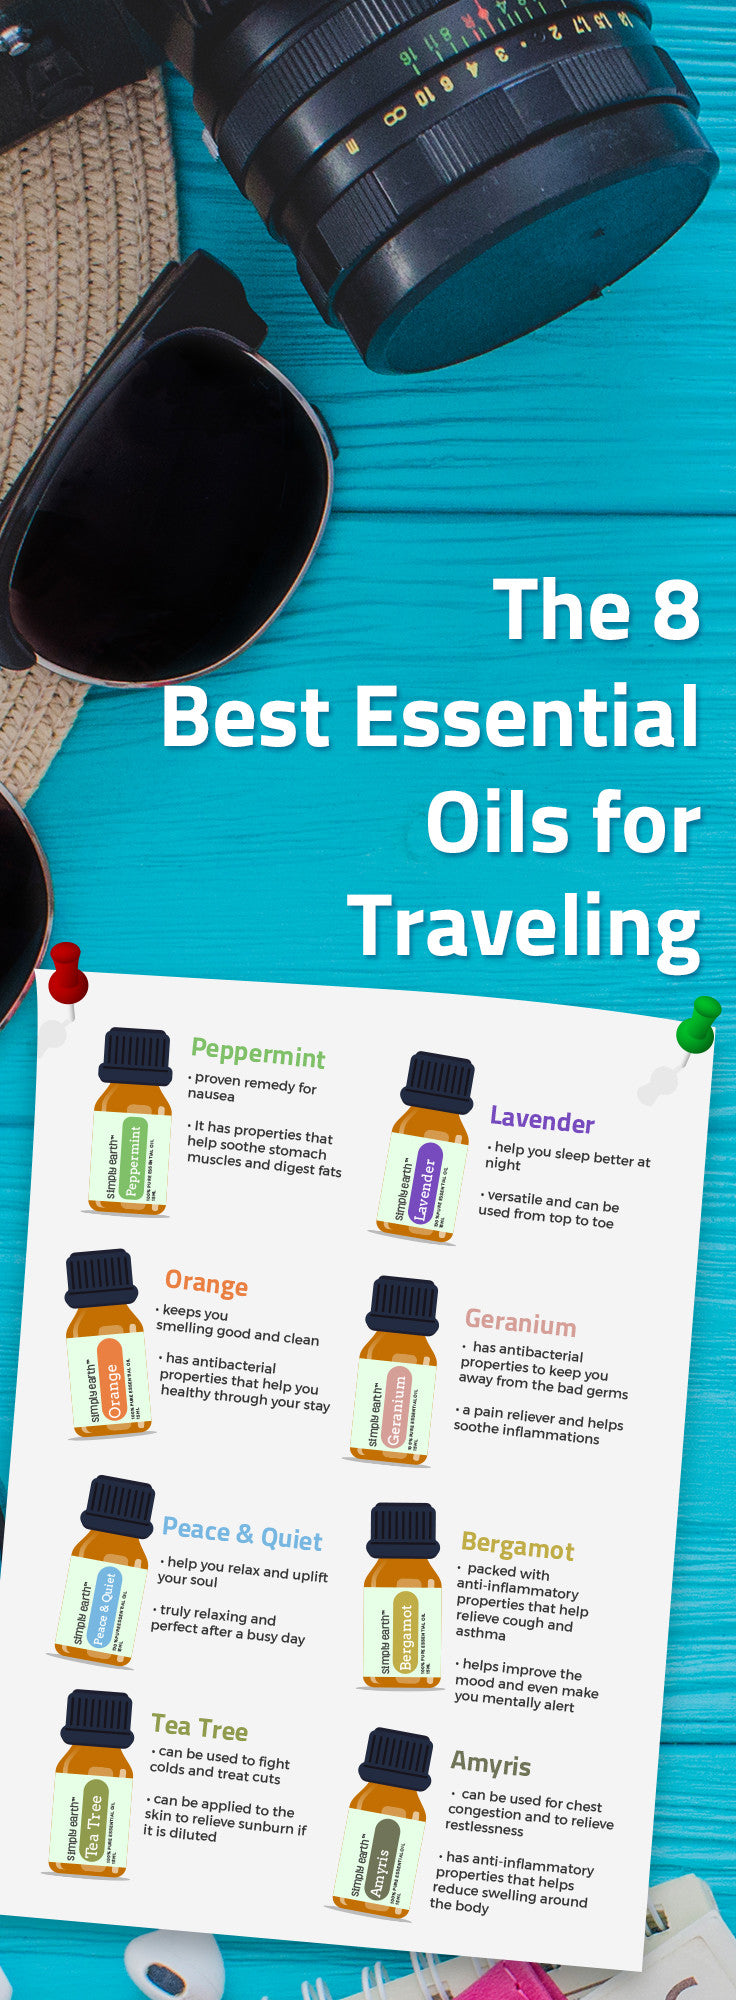 best 8 essential oils for travel